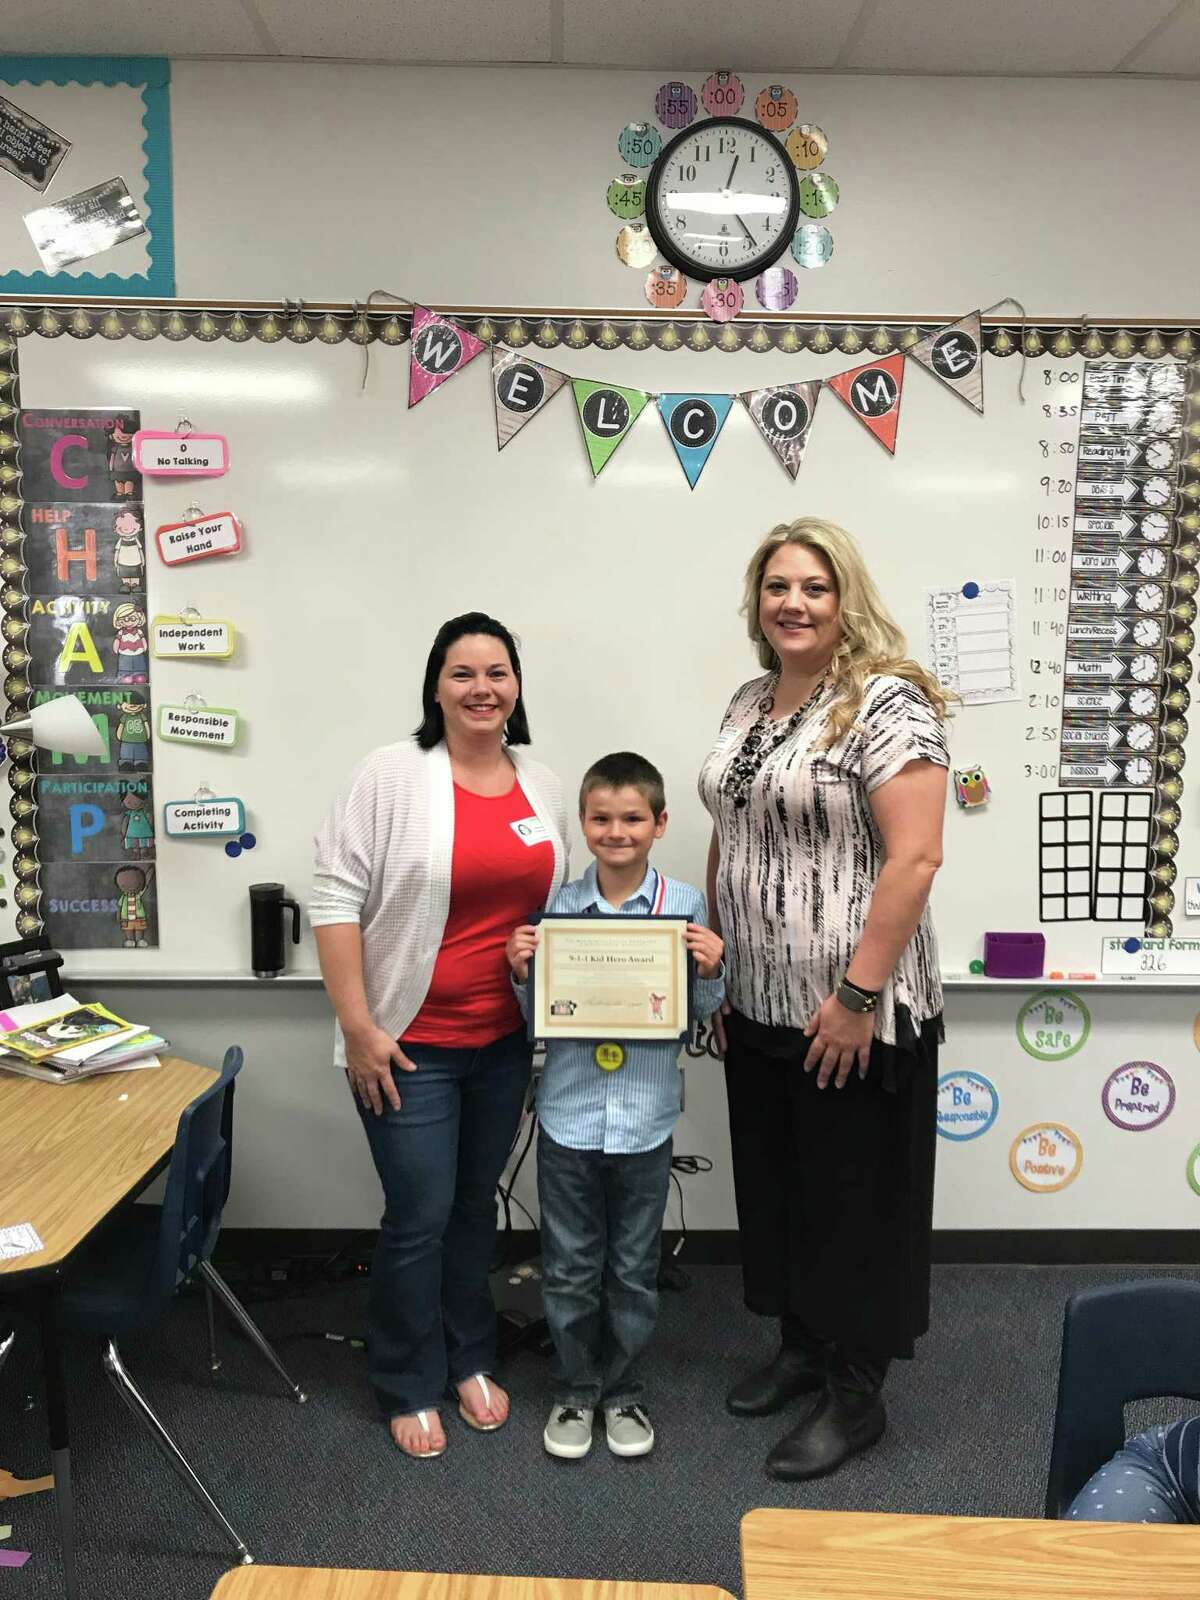 James Pugh, 7, of Conroe, called 911 and saved his mom's life after she fell unconscious in September. On Monday, Nov. 13, the Montgomery Country Emergency Communication District presented him with the 911 Kid Hero Award. (submitted photo)